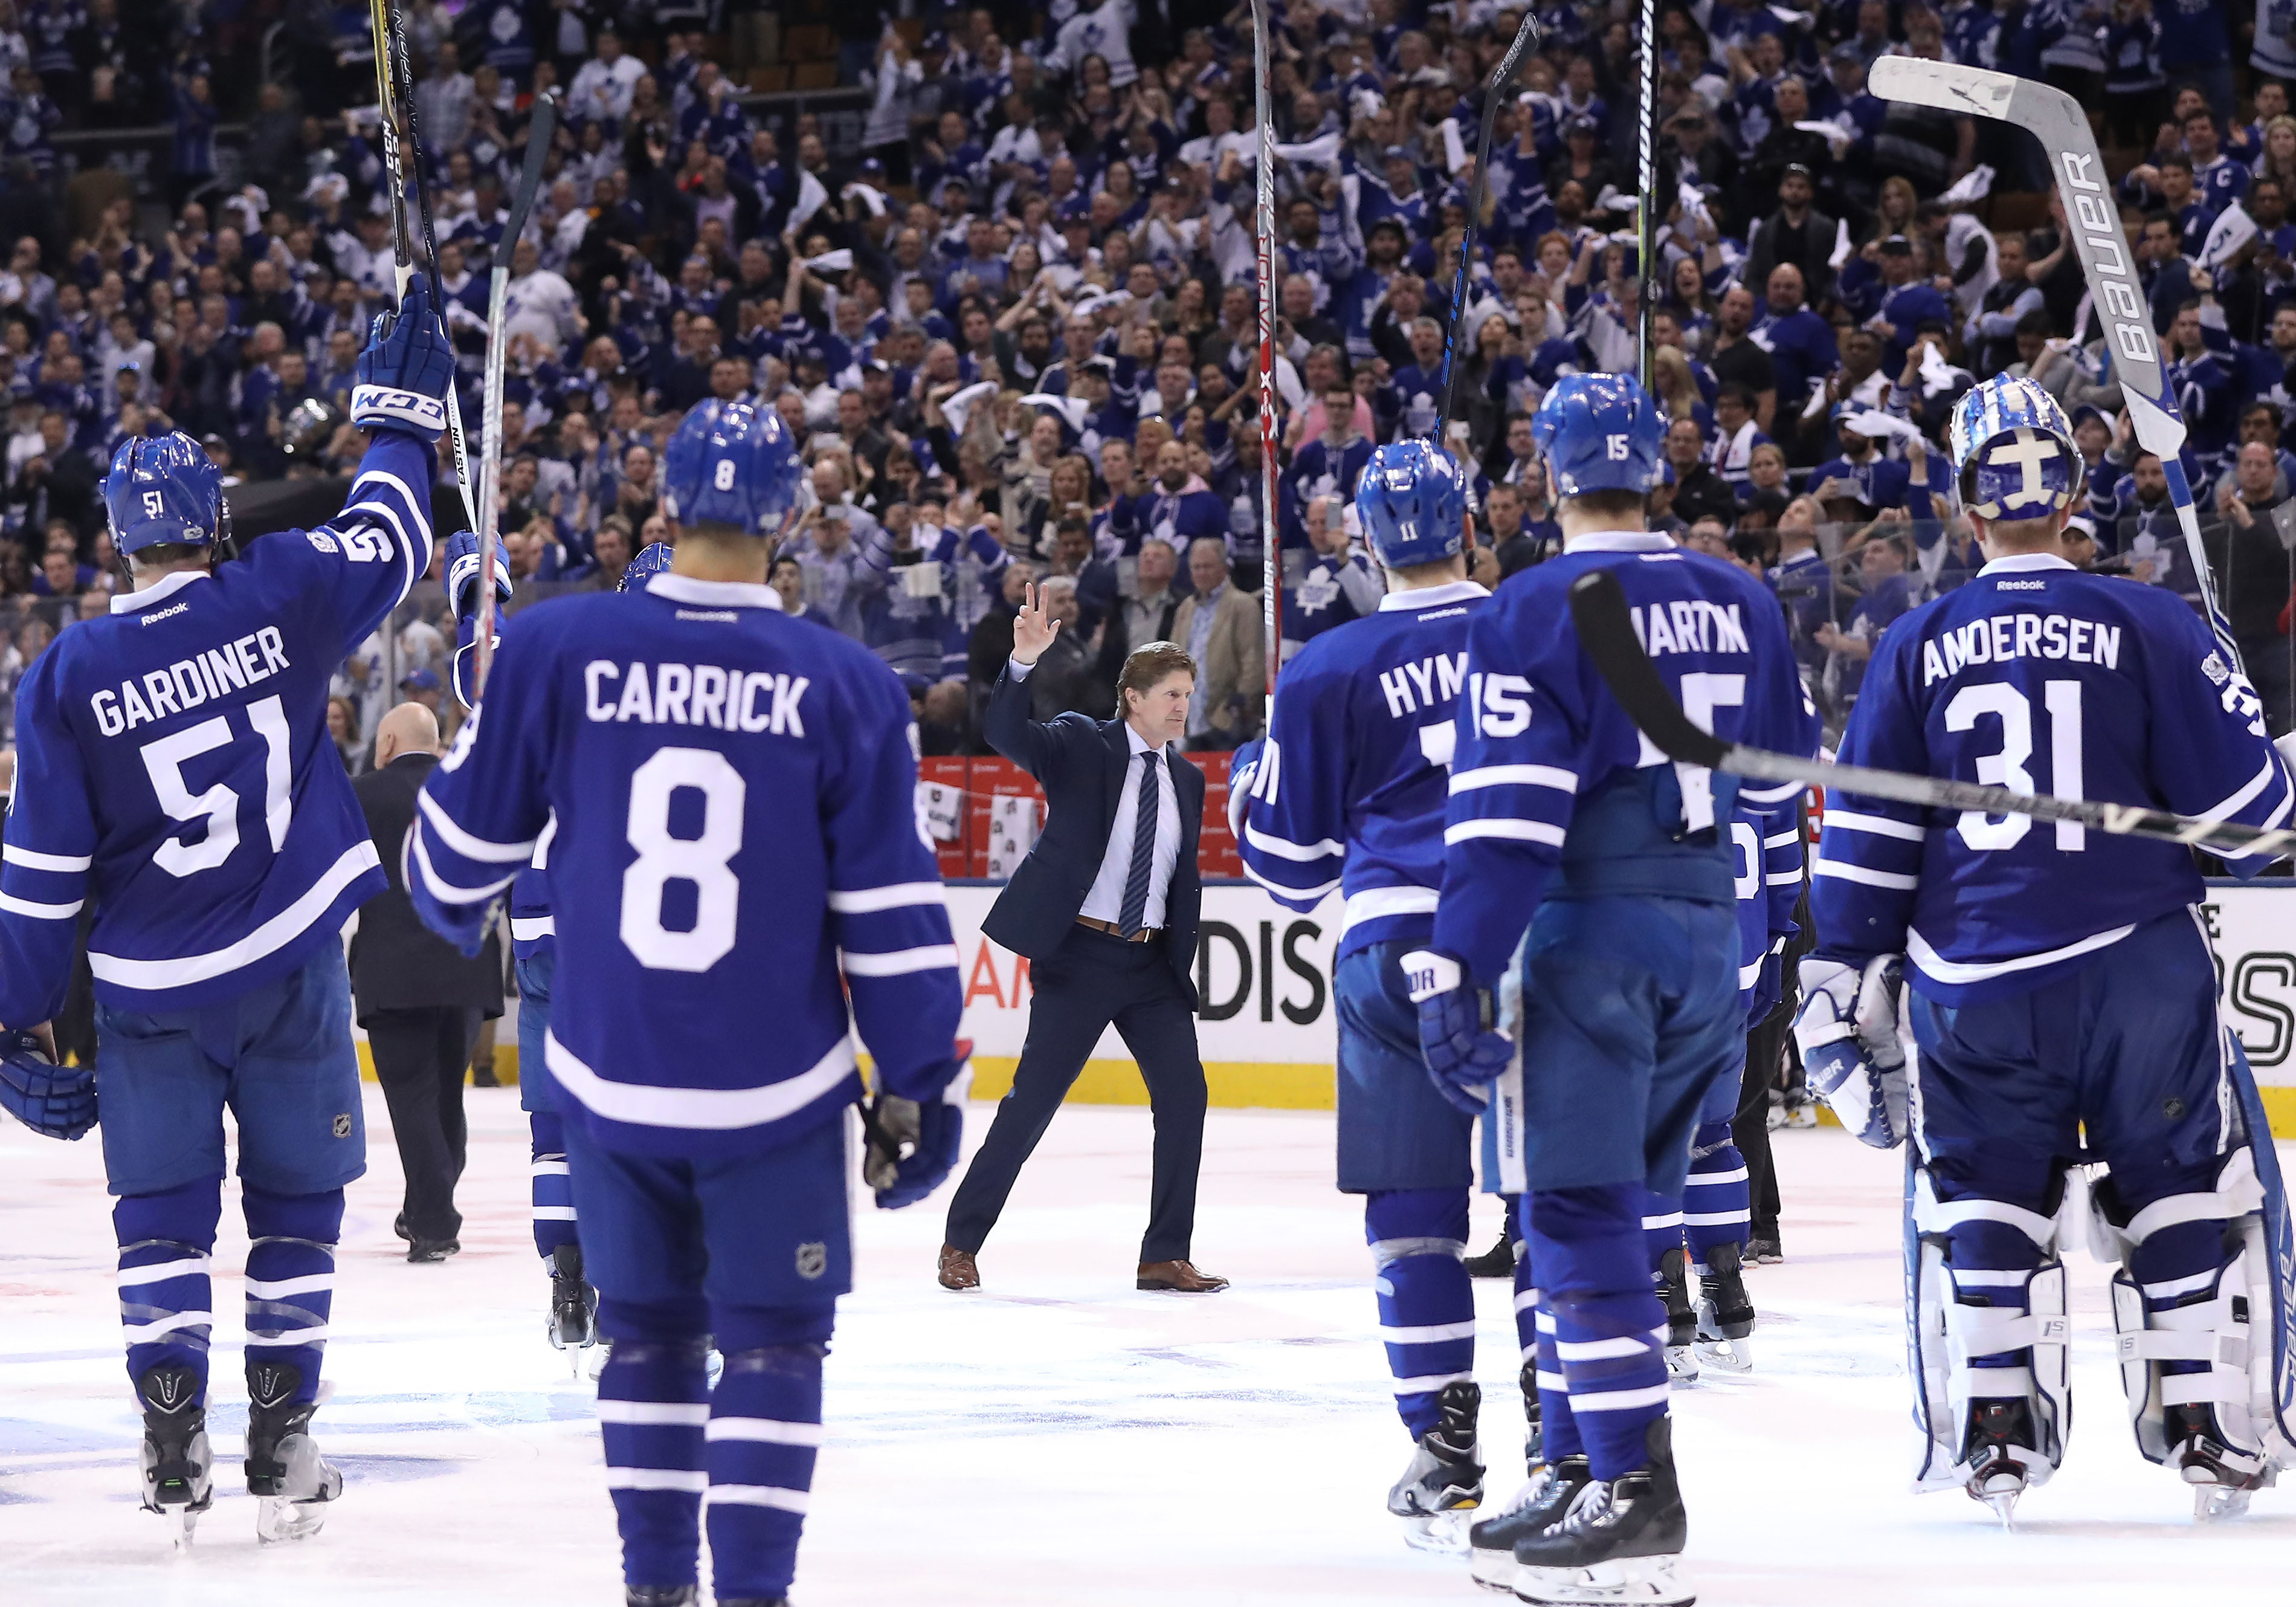 10028434-nhl-stanley-cup-playoffs-washington-capitals-at-toronto-maple-leafs